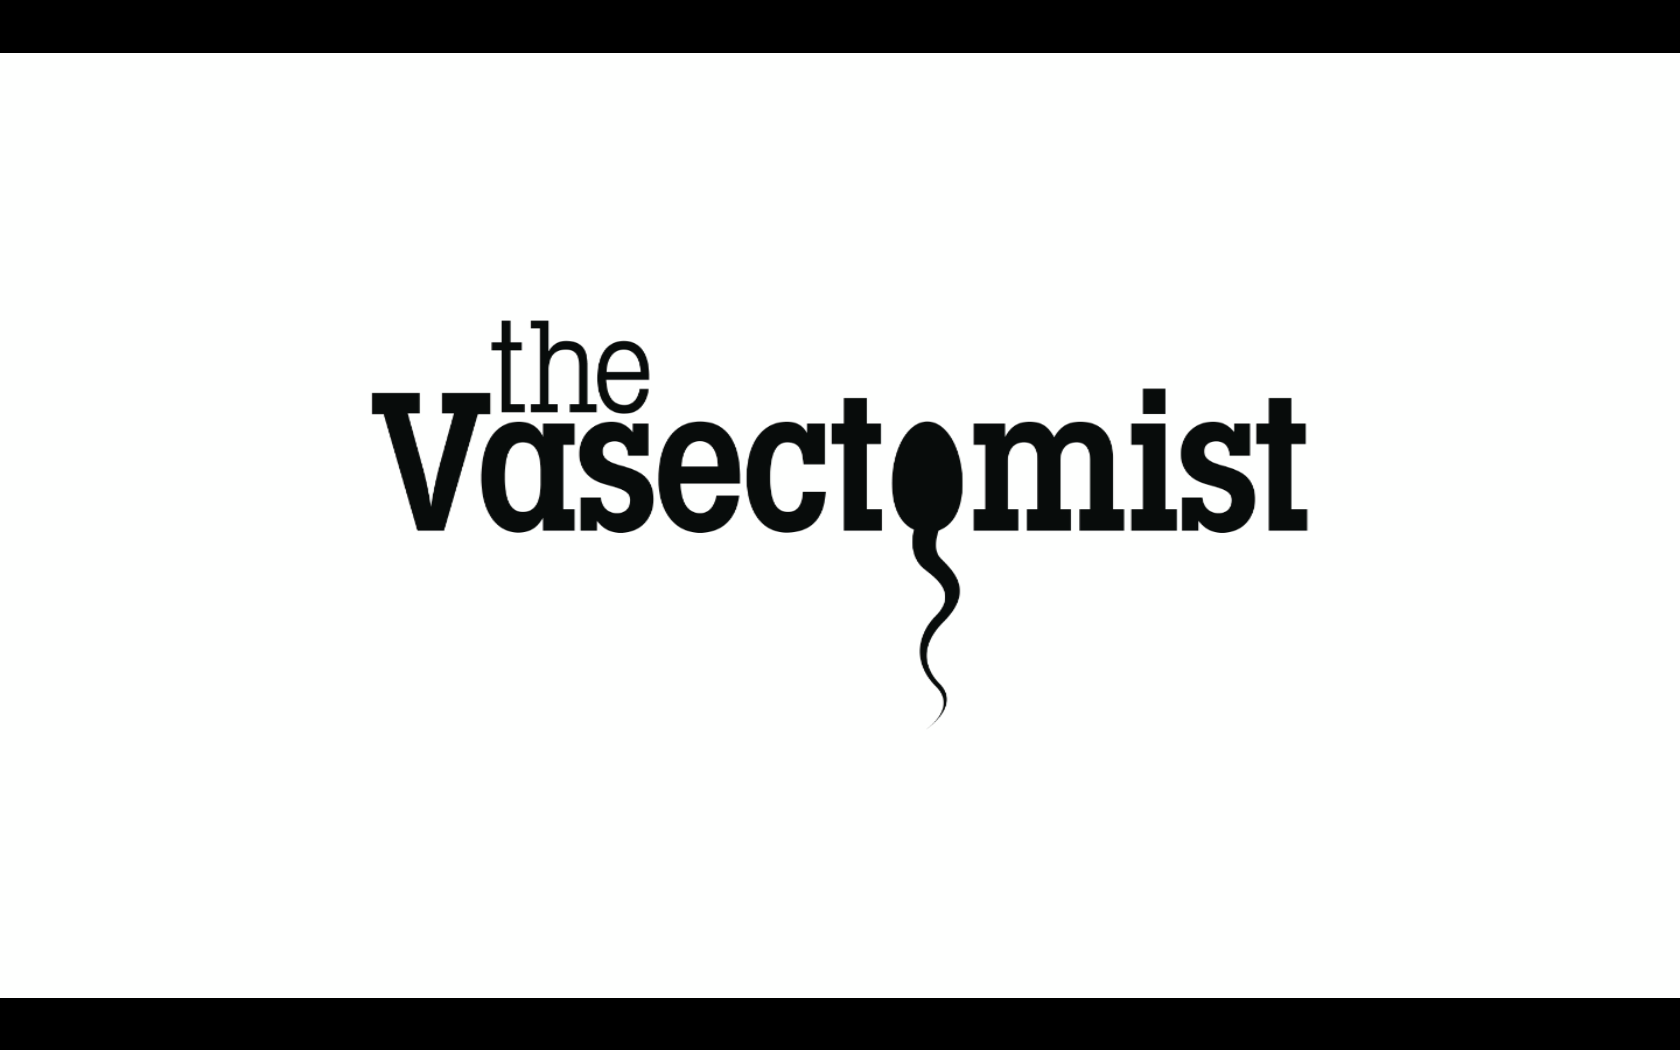 The Vasectomist: A Vasectomy Global Mission